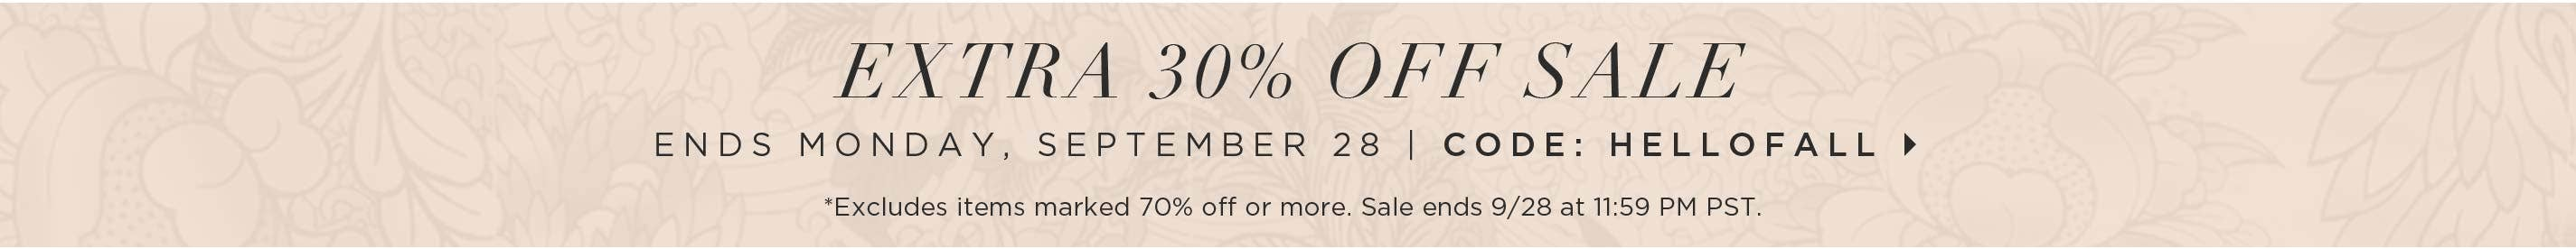 Extra 30% off Sale - Ends September 28 - Code: HELLOFALL - *Excludes items marked 70% off or more. Sale ends 9/28 at 11:59 PM PST.